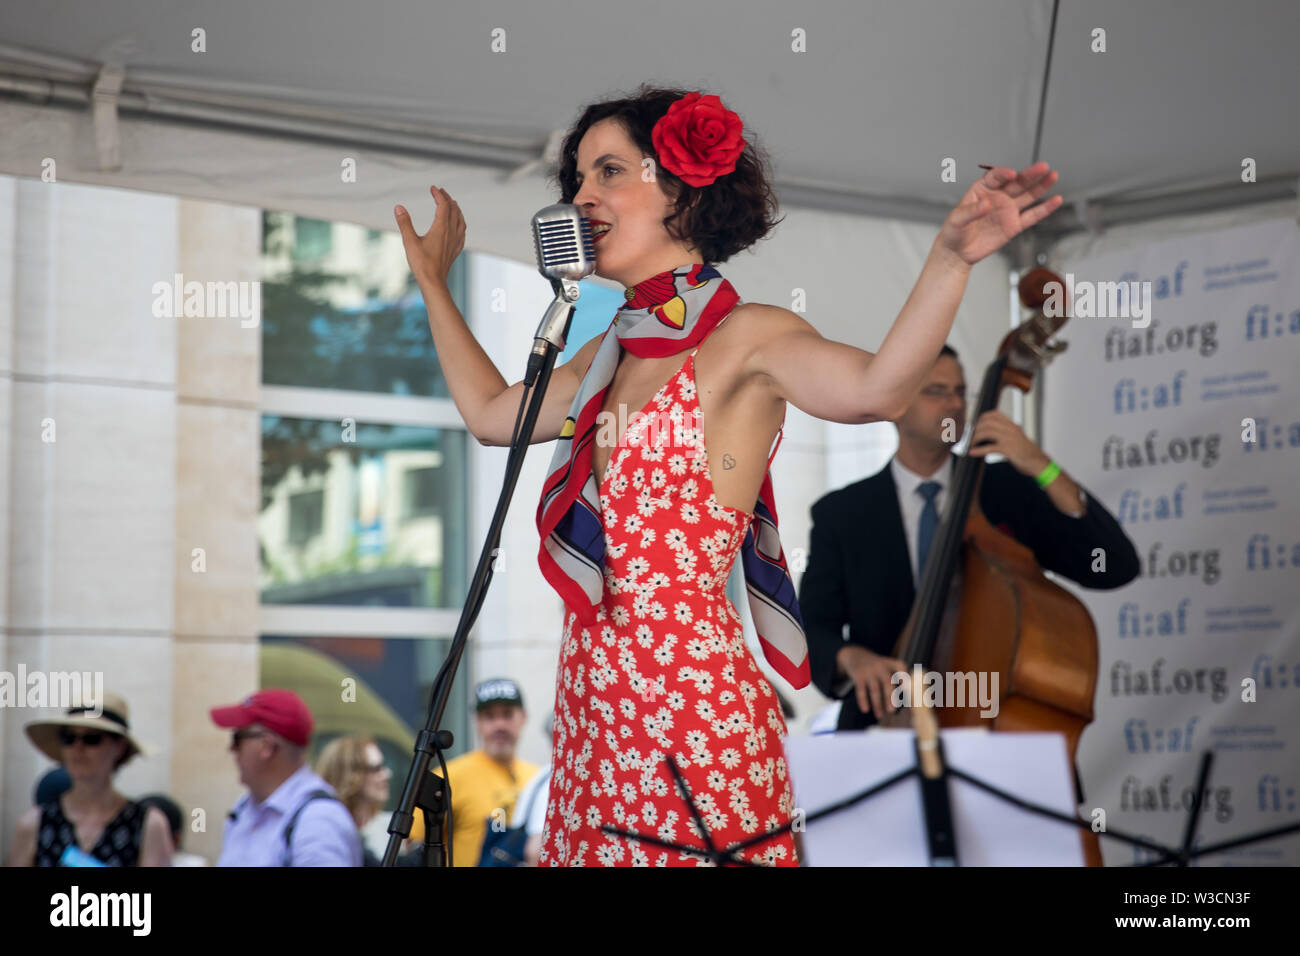 New York, USA. 14th July 2019. New York, French National Day. 14th July, 1789. A singer performs during the French Institute Alliance Francaise (FIAF)'s Bastille Day Celebration in New York, the United States, July 14, 2019. Bastille Day, also known as the French National Day, commemorates the start of the French Revolution and the storming of the Bastille in Paris on July 14, 1789. Credit: Michael Nagle/Xinhua/Alamy Live News - Stock Image